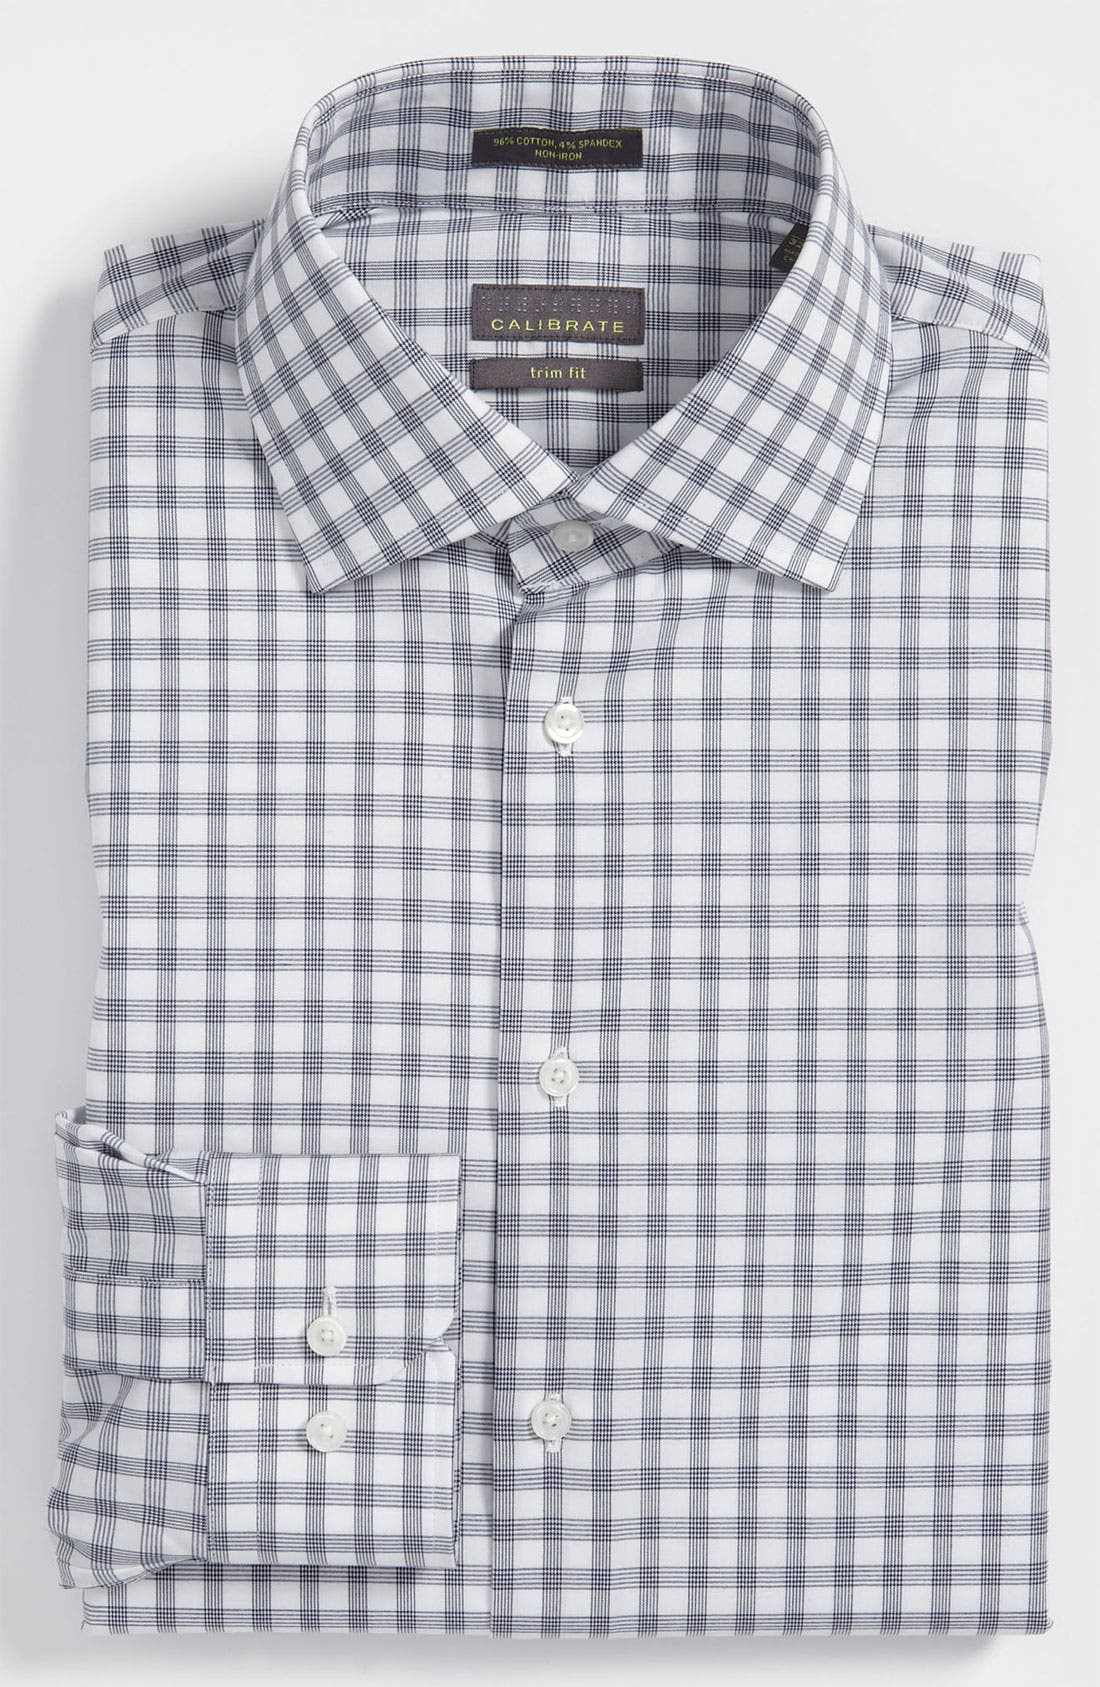 Alternate Image 1 Selected - Calibrate Trim Fit Dress Shirt